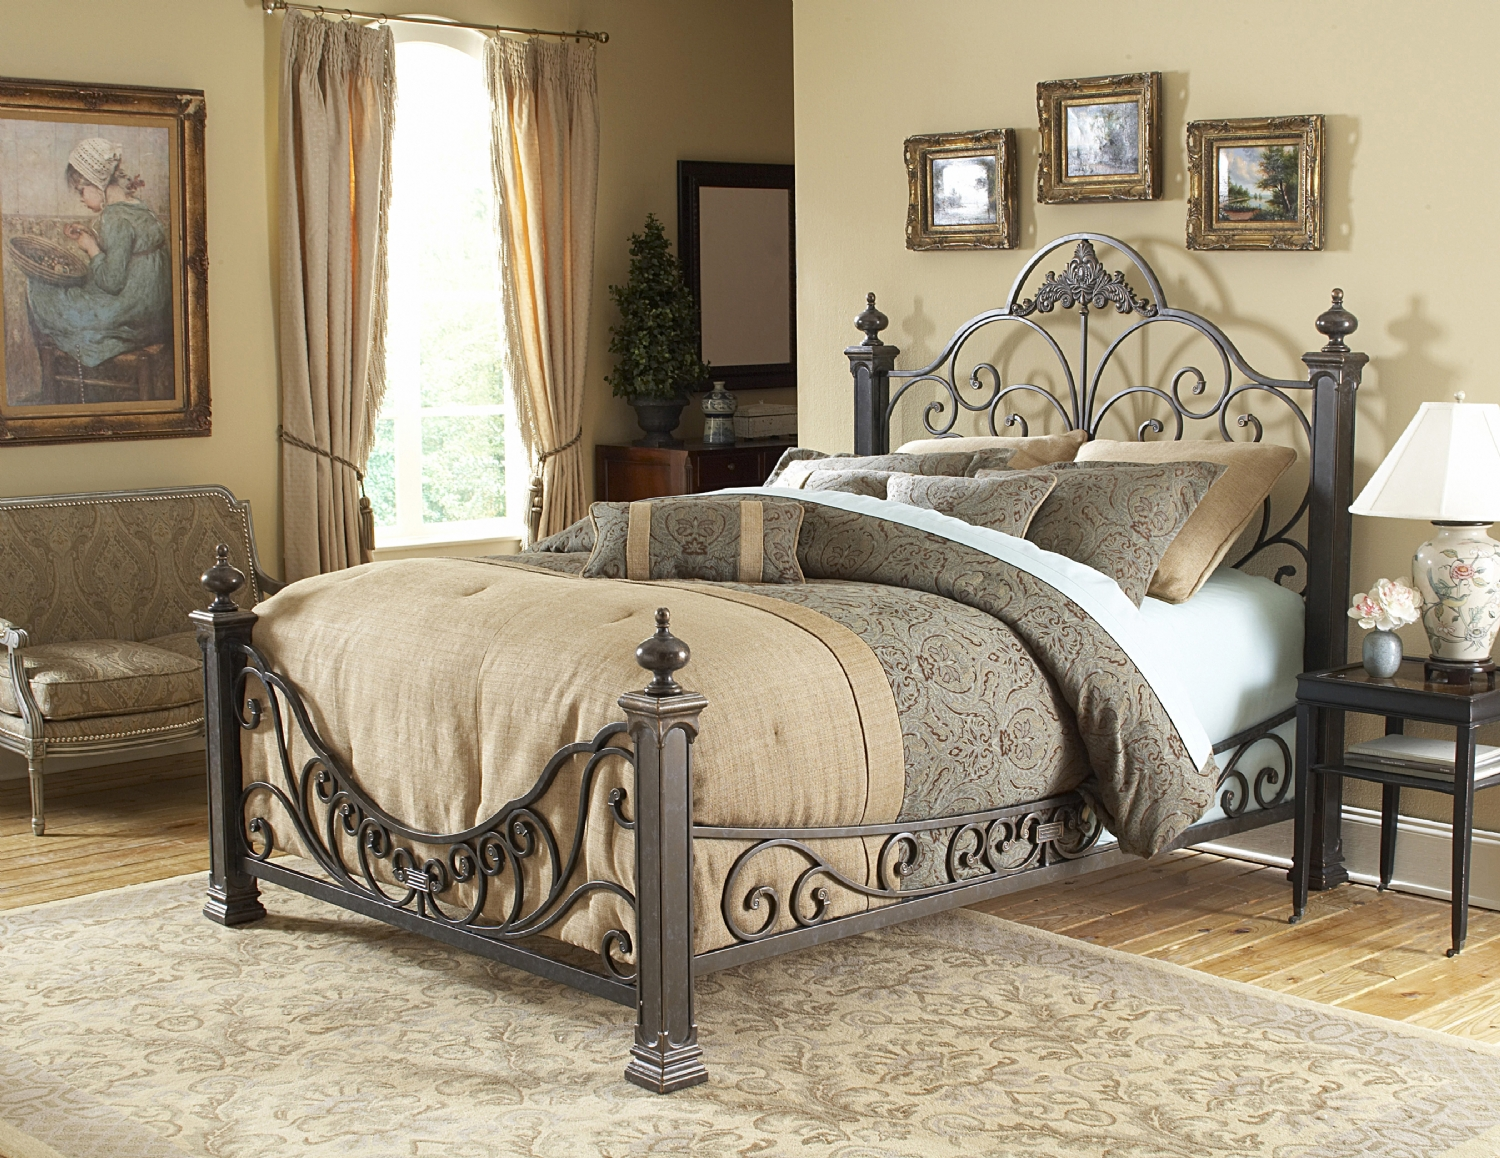 Bedroom Furniture Portland Bedrooms West